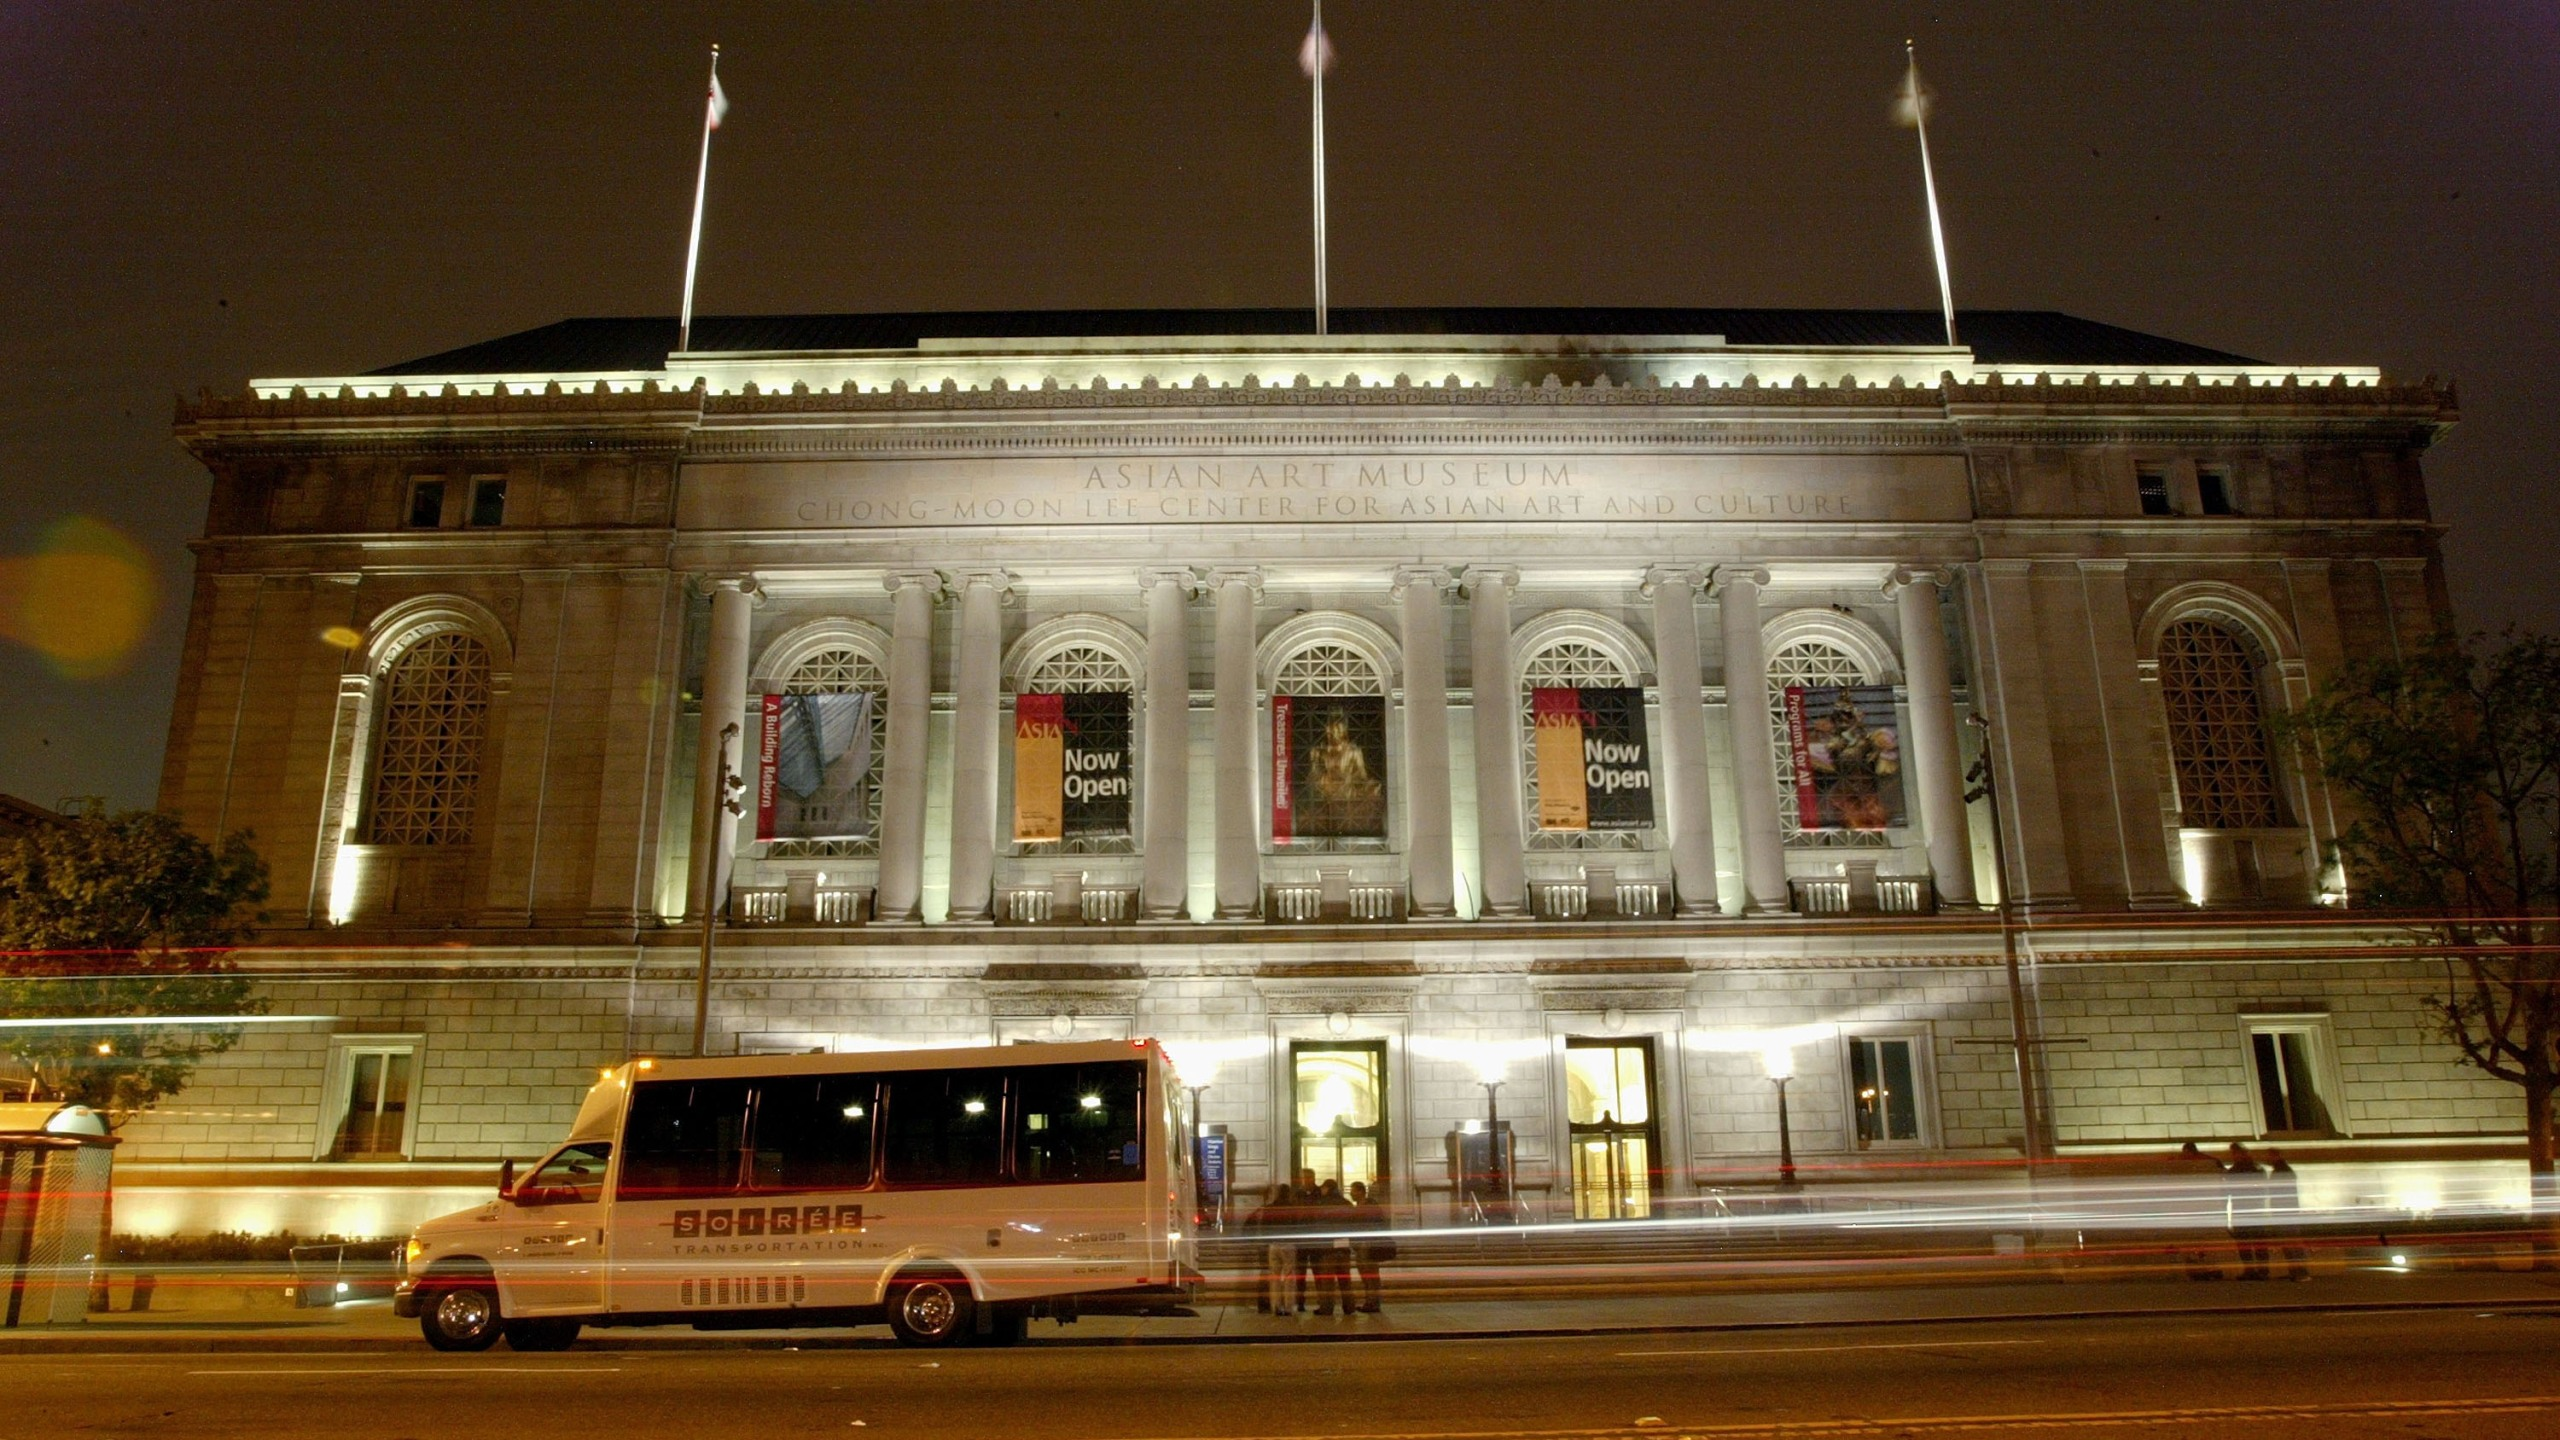 The exterior of the Asian Art Museum is seen on June 7, 2003, in San Francisco. (Justin Sullivan/Getty Images)